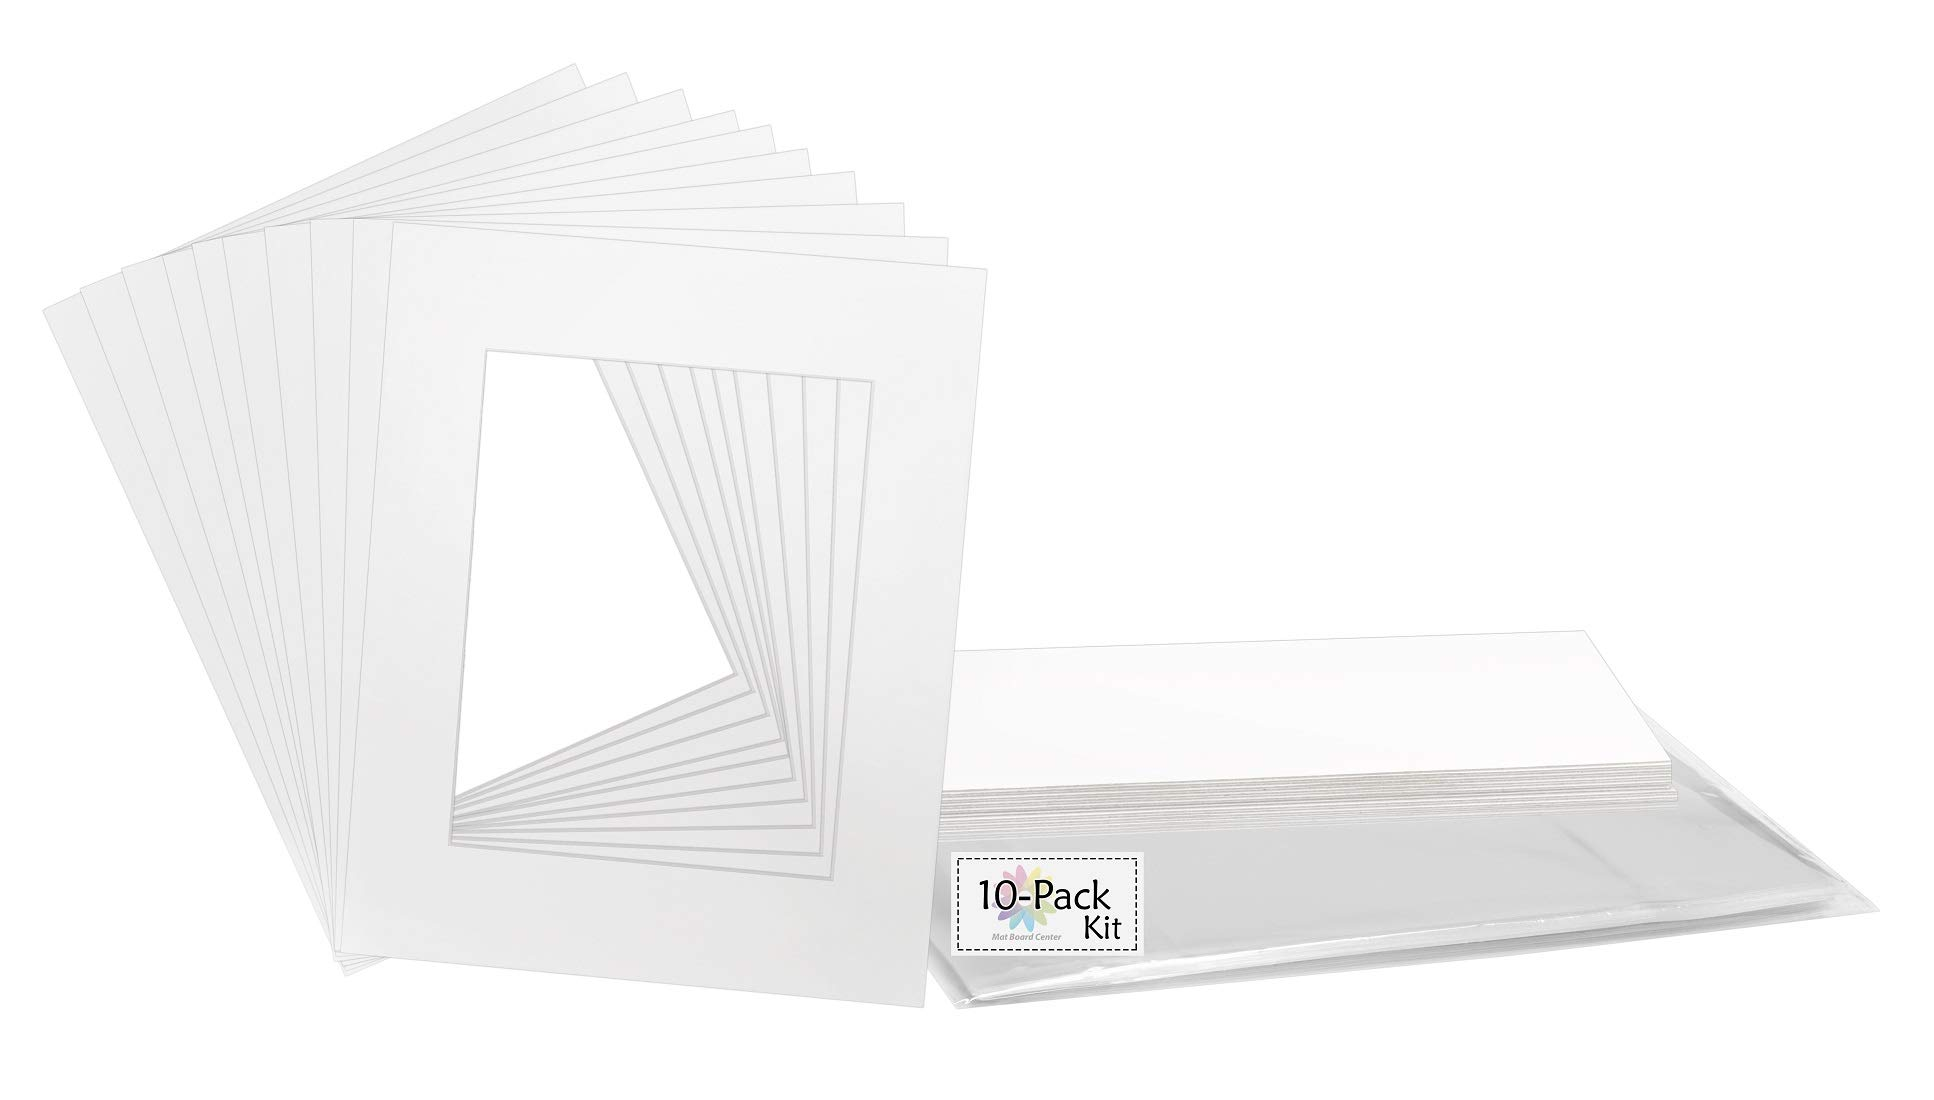 Mat Board Center, Acid-Free Pre-Cut 16x20 White Picture Mat Set. Includes a Pack of 10 White Core Bevel Cut Mattes for 11x14 Photos, Backers & Clear Bags by MBC MAT BOARD CENTER